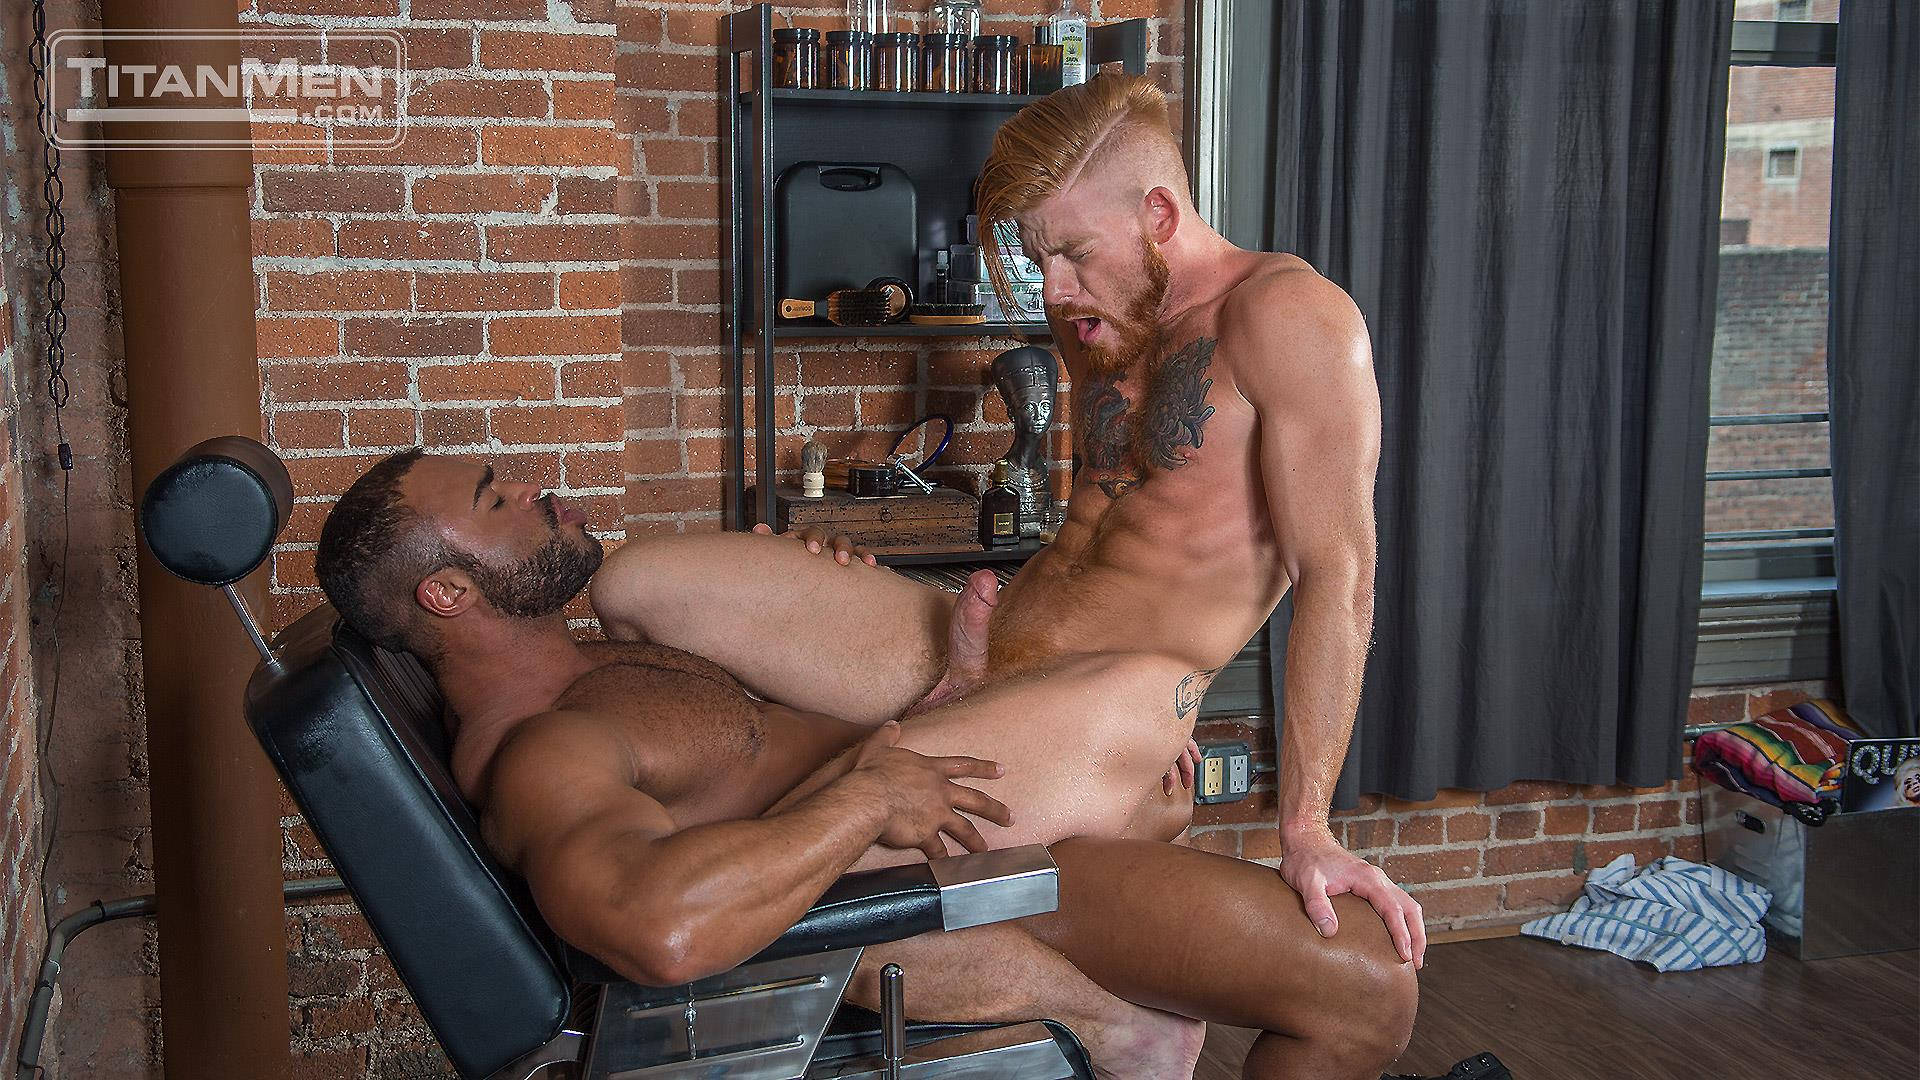 TitanMen-Micah-Brandt-and-Bennett-Anthony-Interracial-Muscle-Hunks-Flip-Fucking-Amateur-Gay-Porn-19 Micah Brandt and Bennett Anthony Flip-Fucking With Their Big Dicks